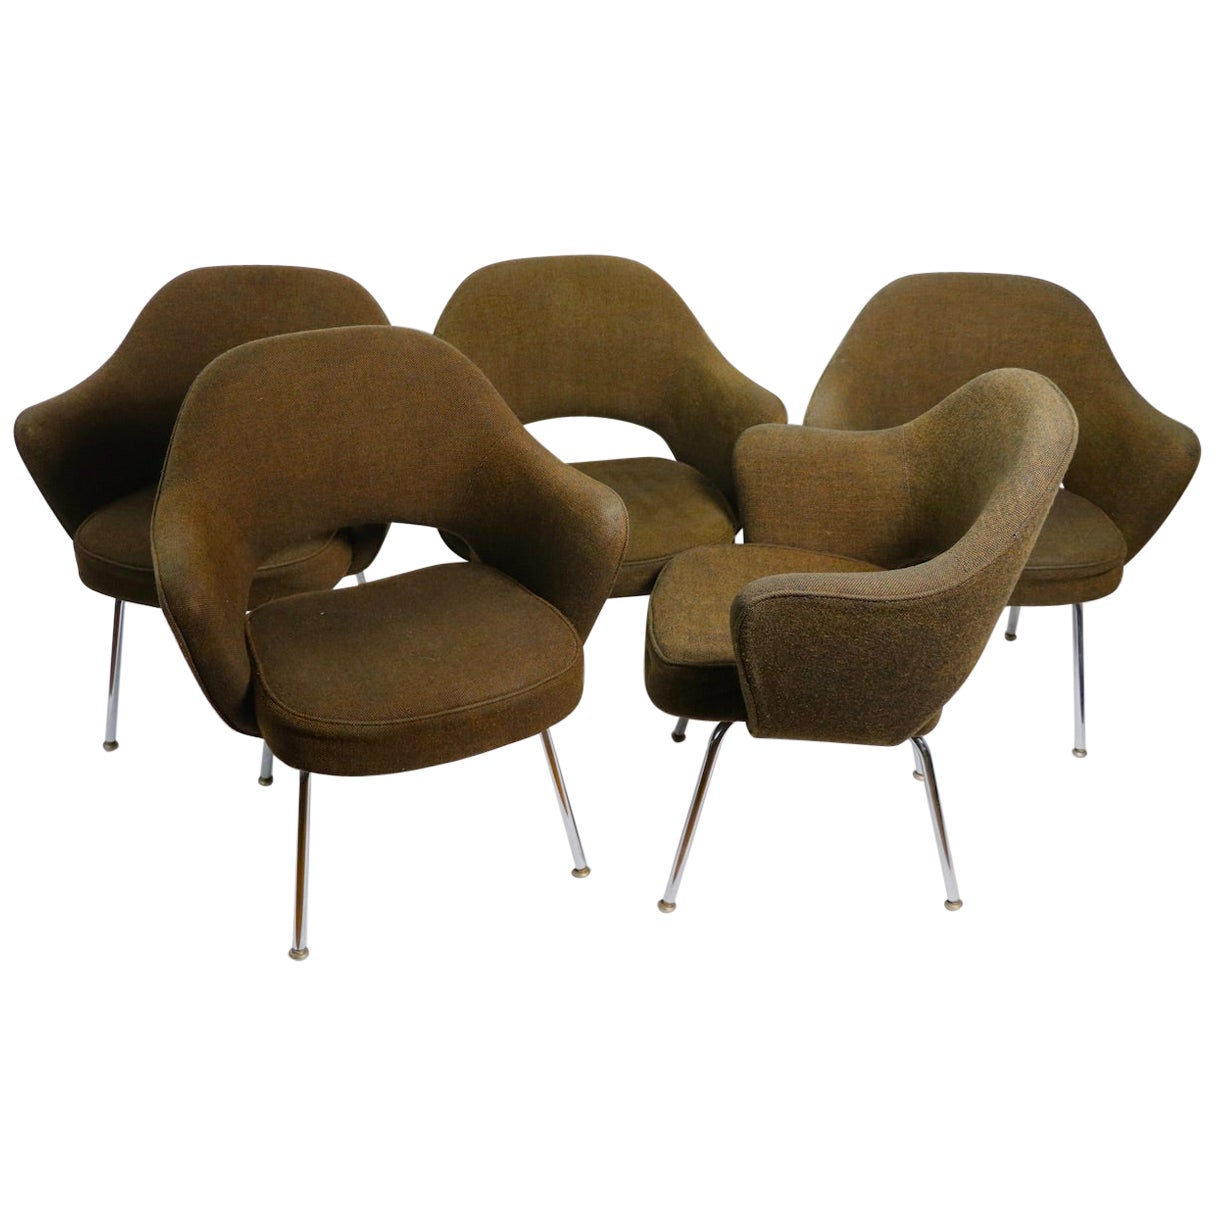 5 Saarinen Executive Chairs for Knoll